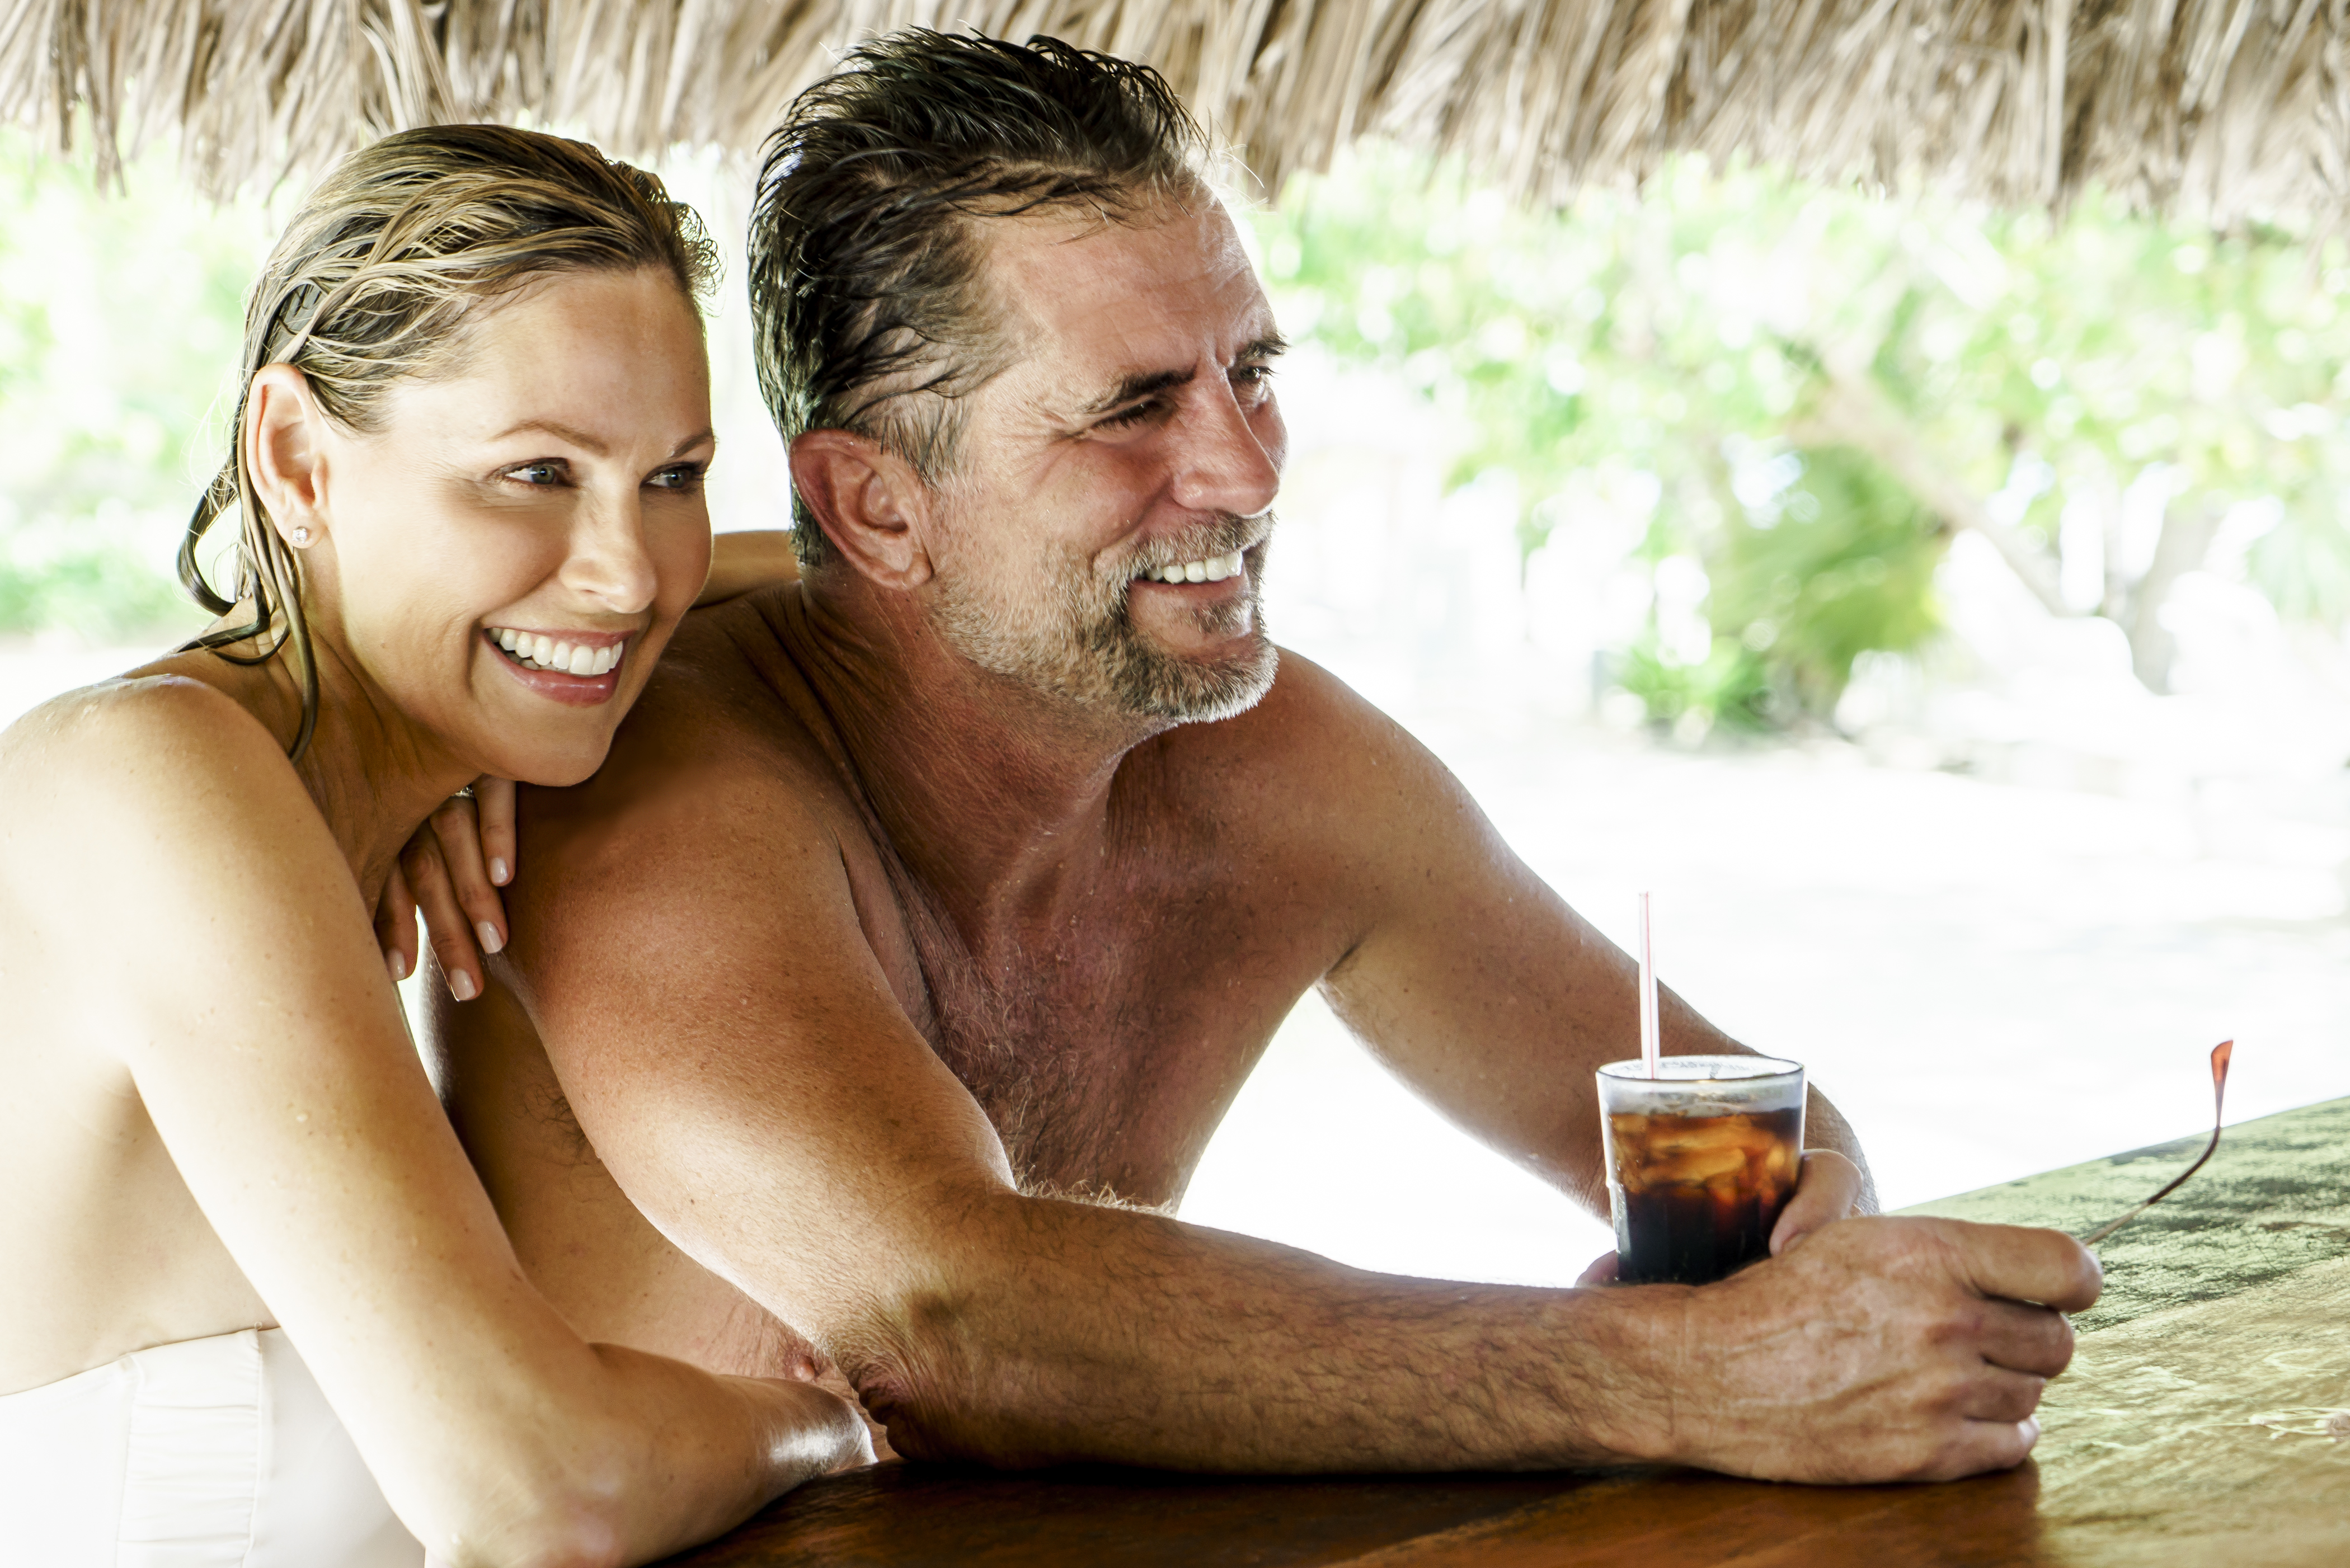 Travel Agency All-Inclusive Resort Couples Swept Away 03